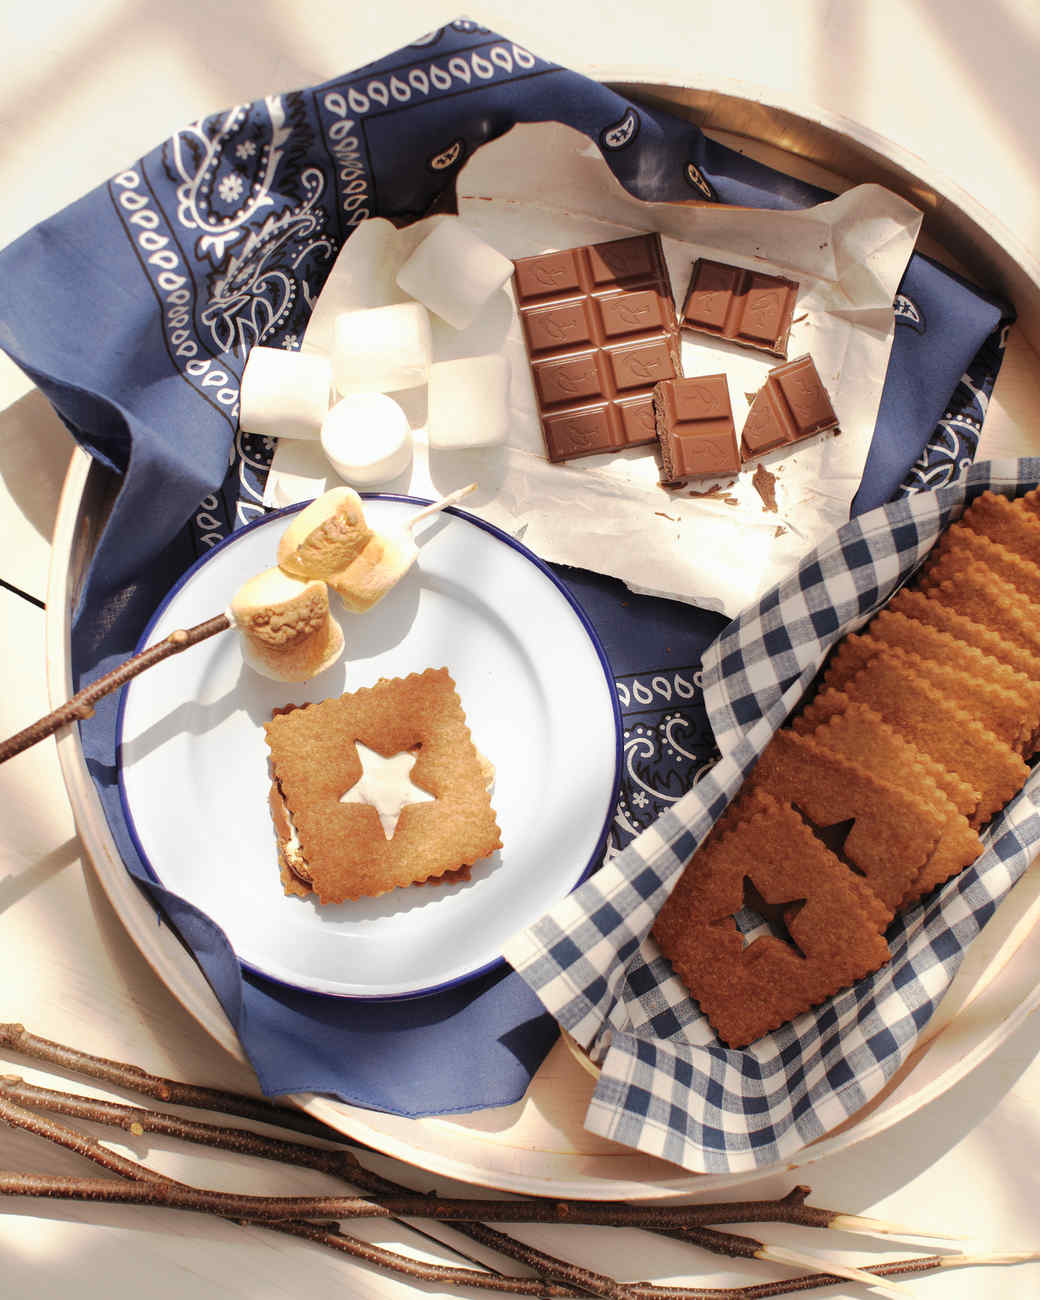 Project Dreams Marshmallow: S'mores And Toasted Marshmallow Recipes